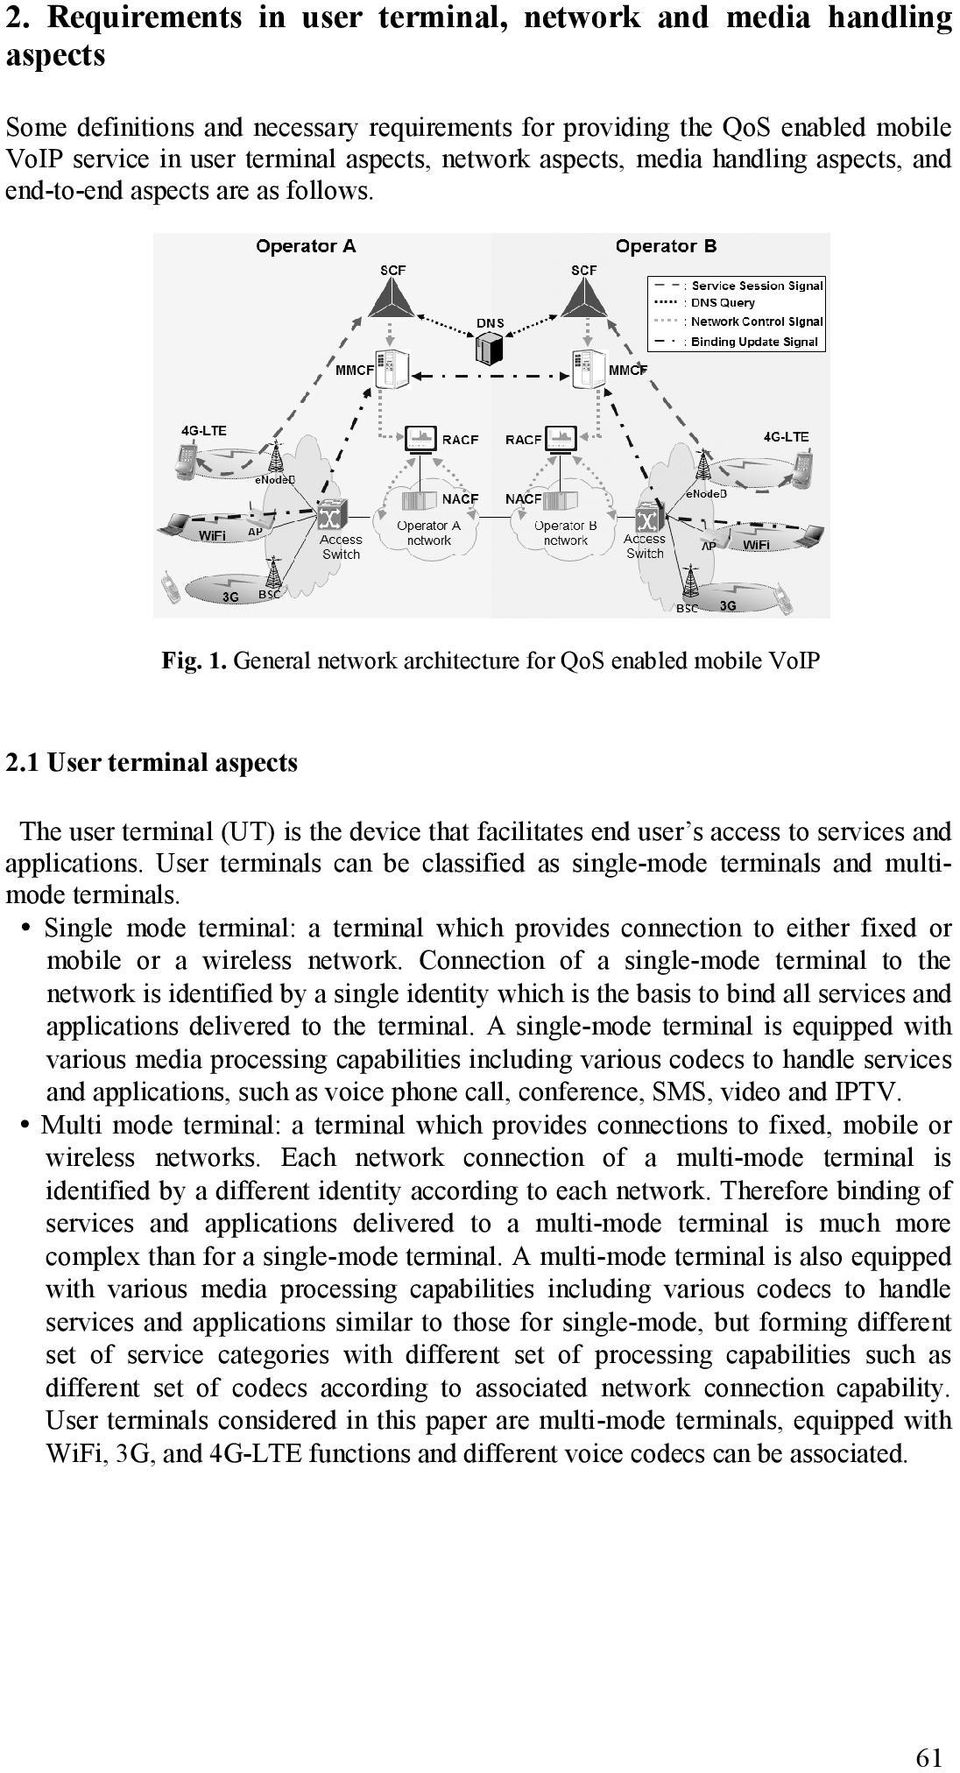 1 User terminal aspects The user terminal (UT) is the device that facilitates end user s access to services and applications.